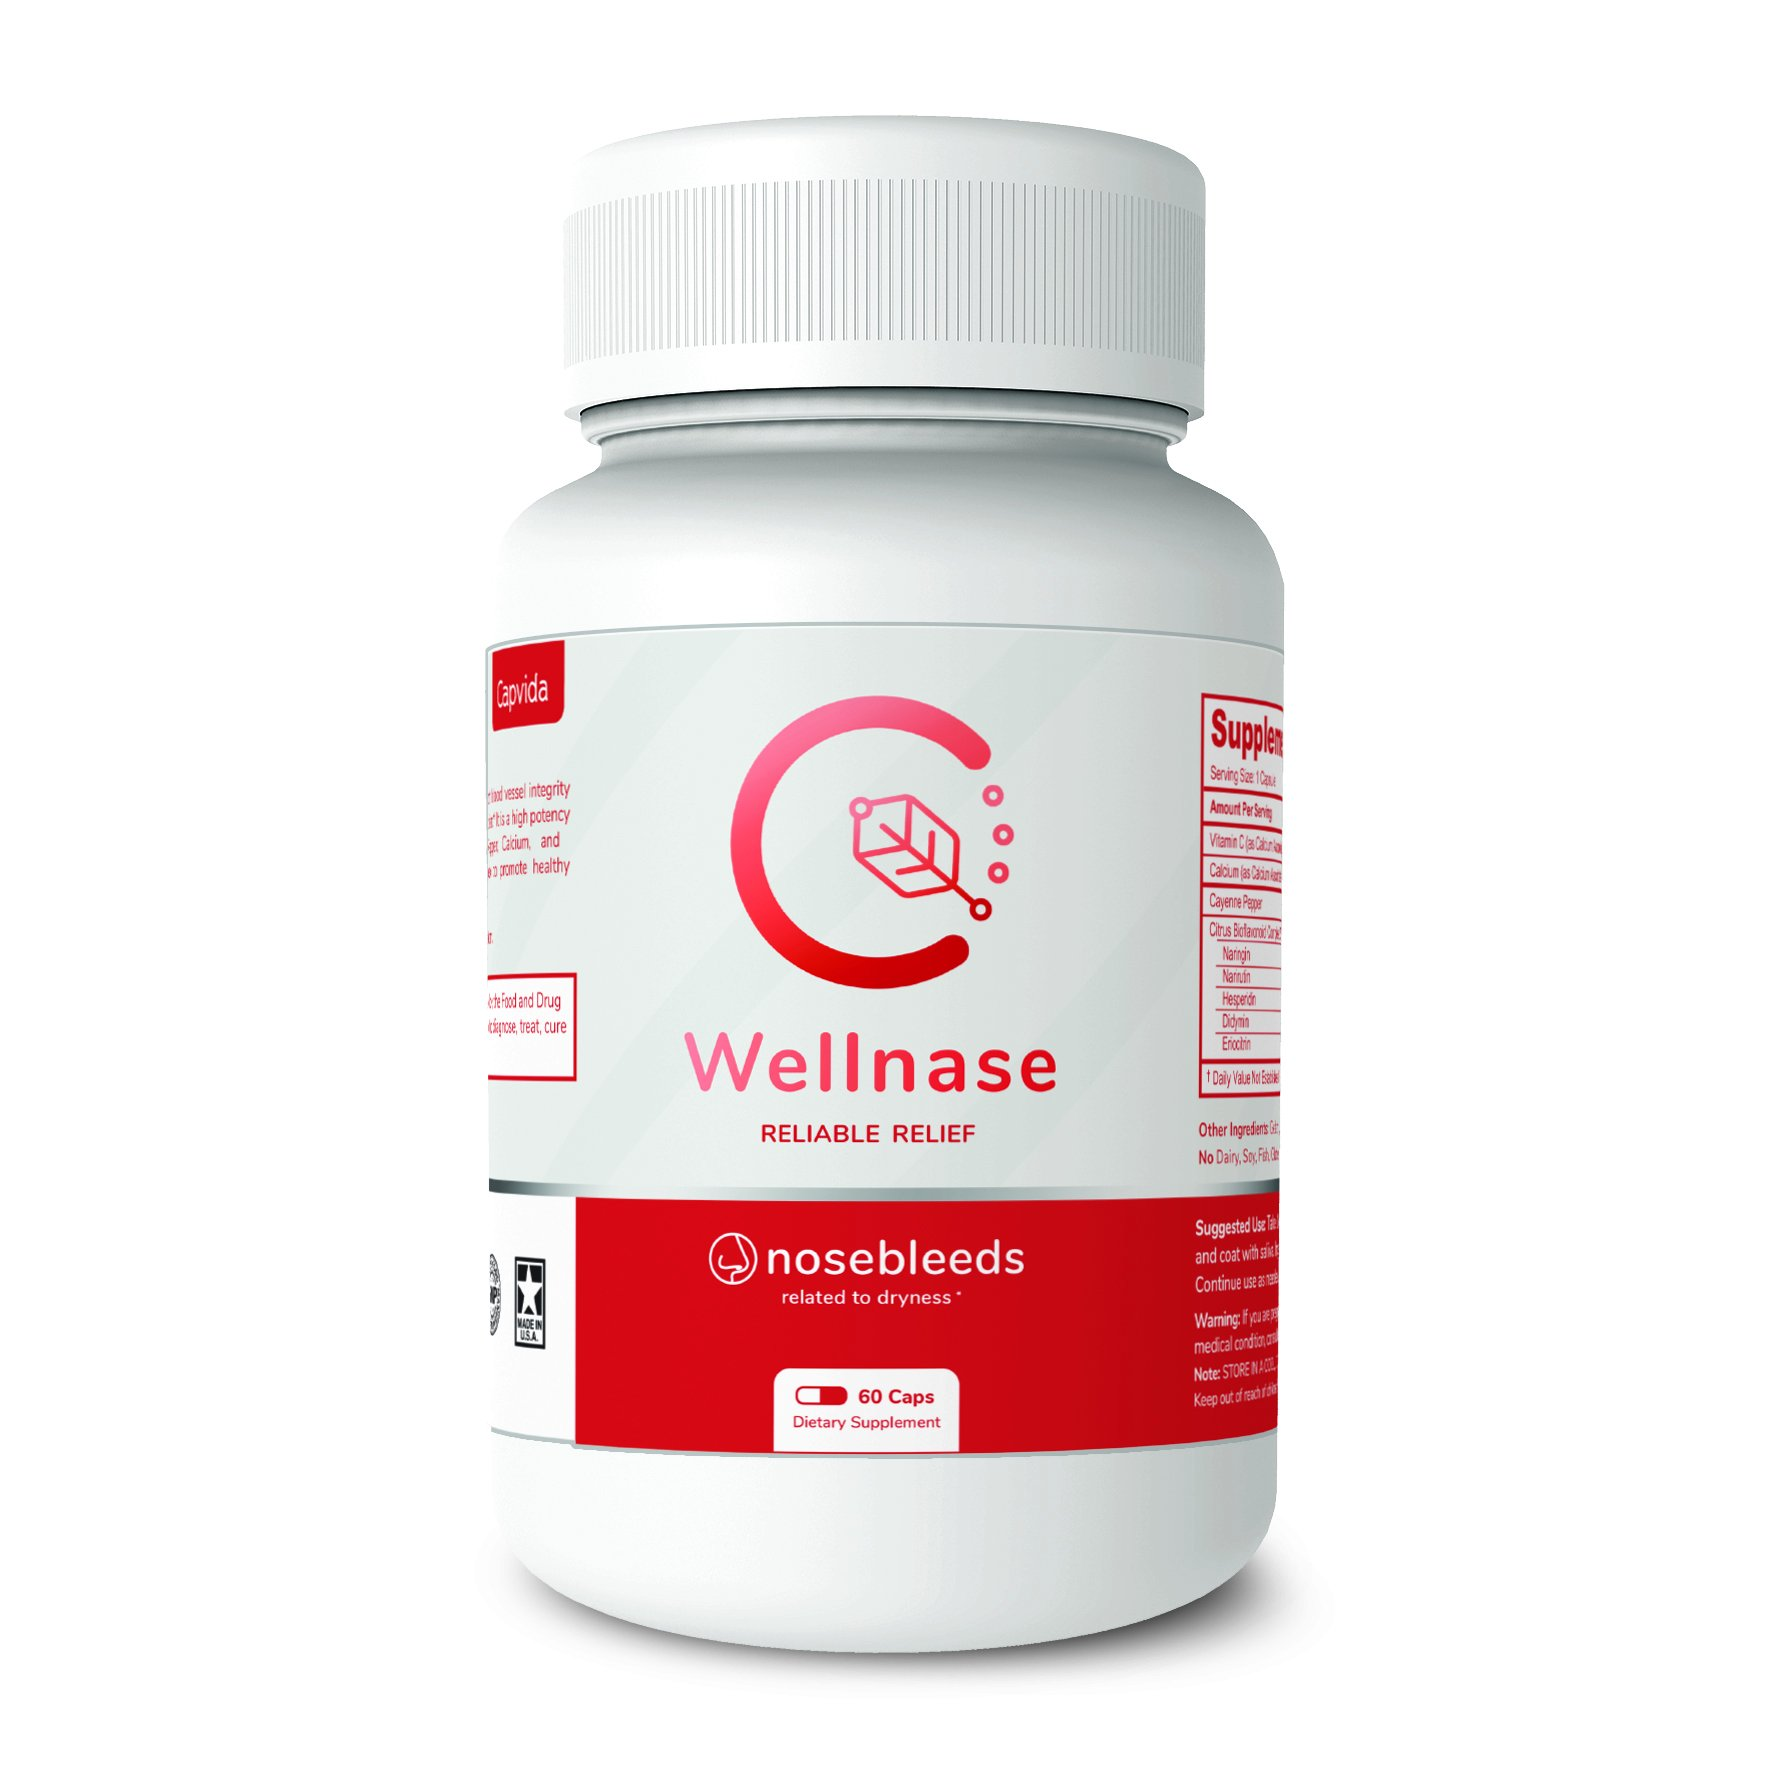 Wellnase Nosebleed Relief – Promotes Blood Vessel Strength and Elasticity - Supports Natural Healing Process – 60-Count Bottle